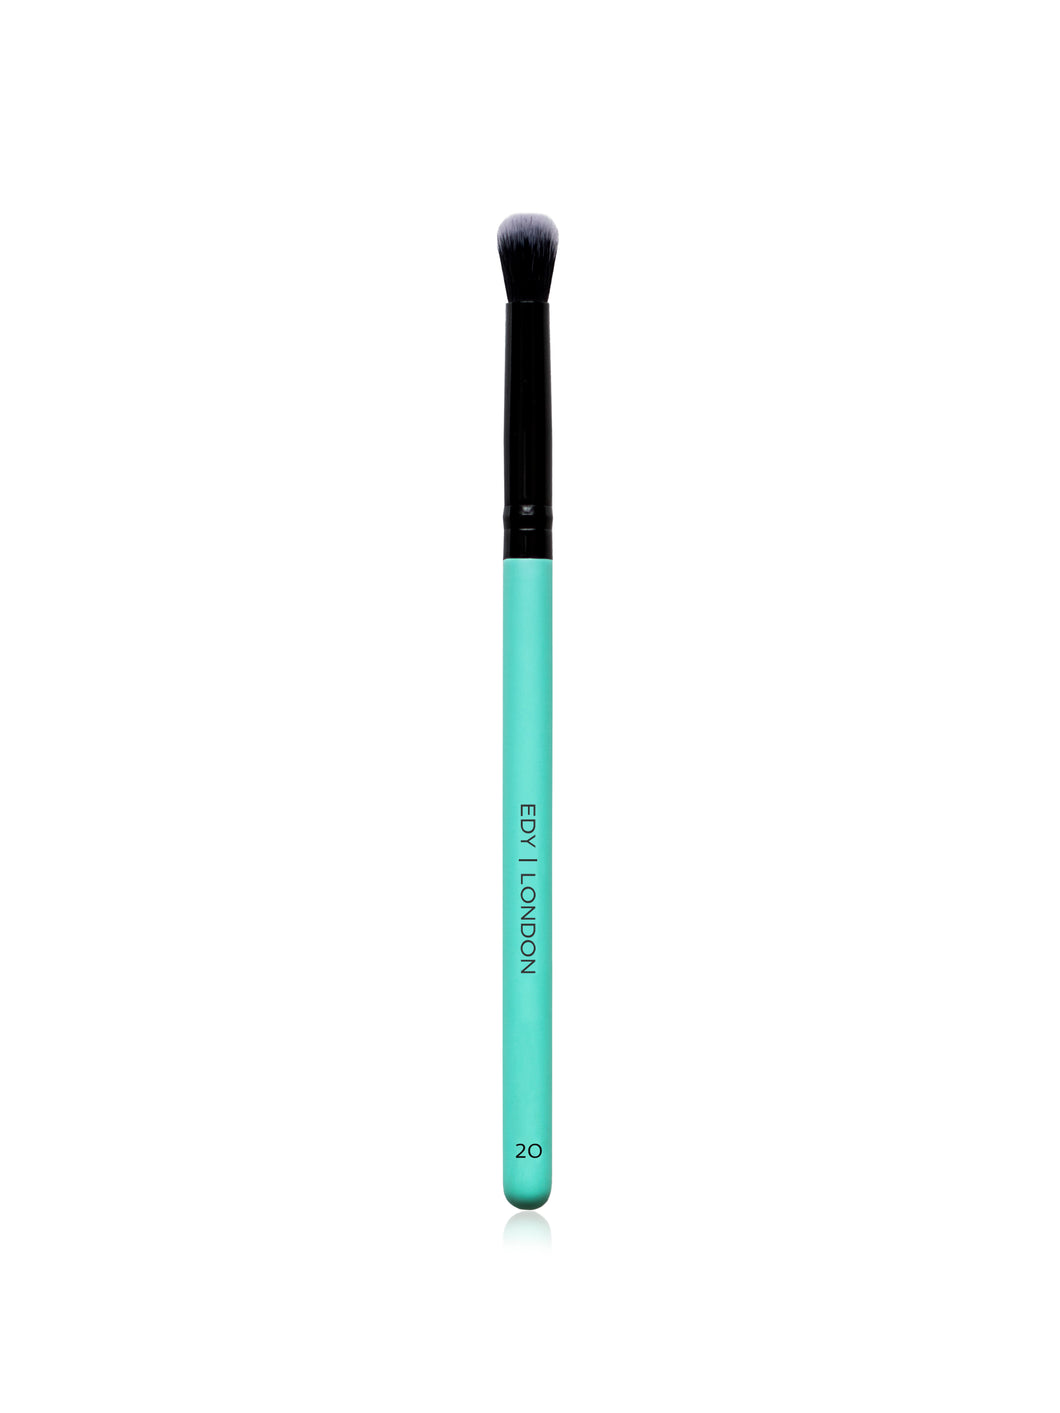 Soft Blender / Concealer Brush 20